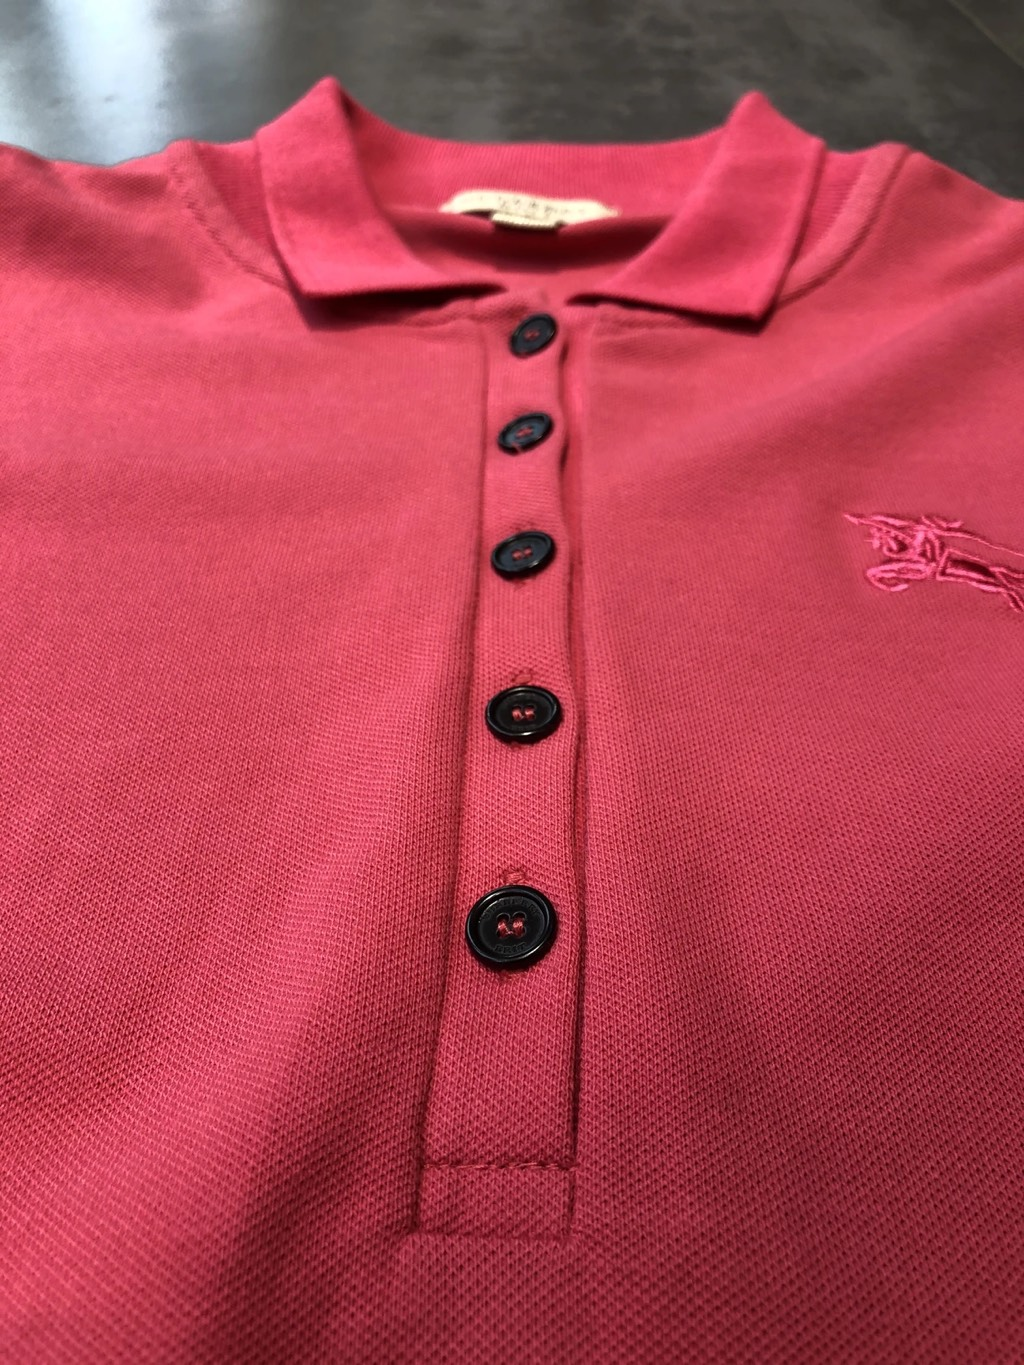 BRAND-NEW BURBERRY POLO FOR WOMENBurberry3